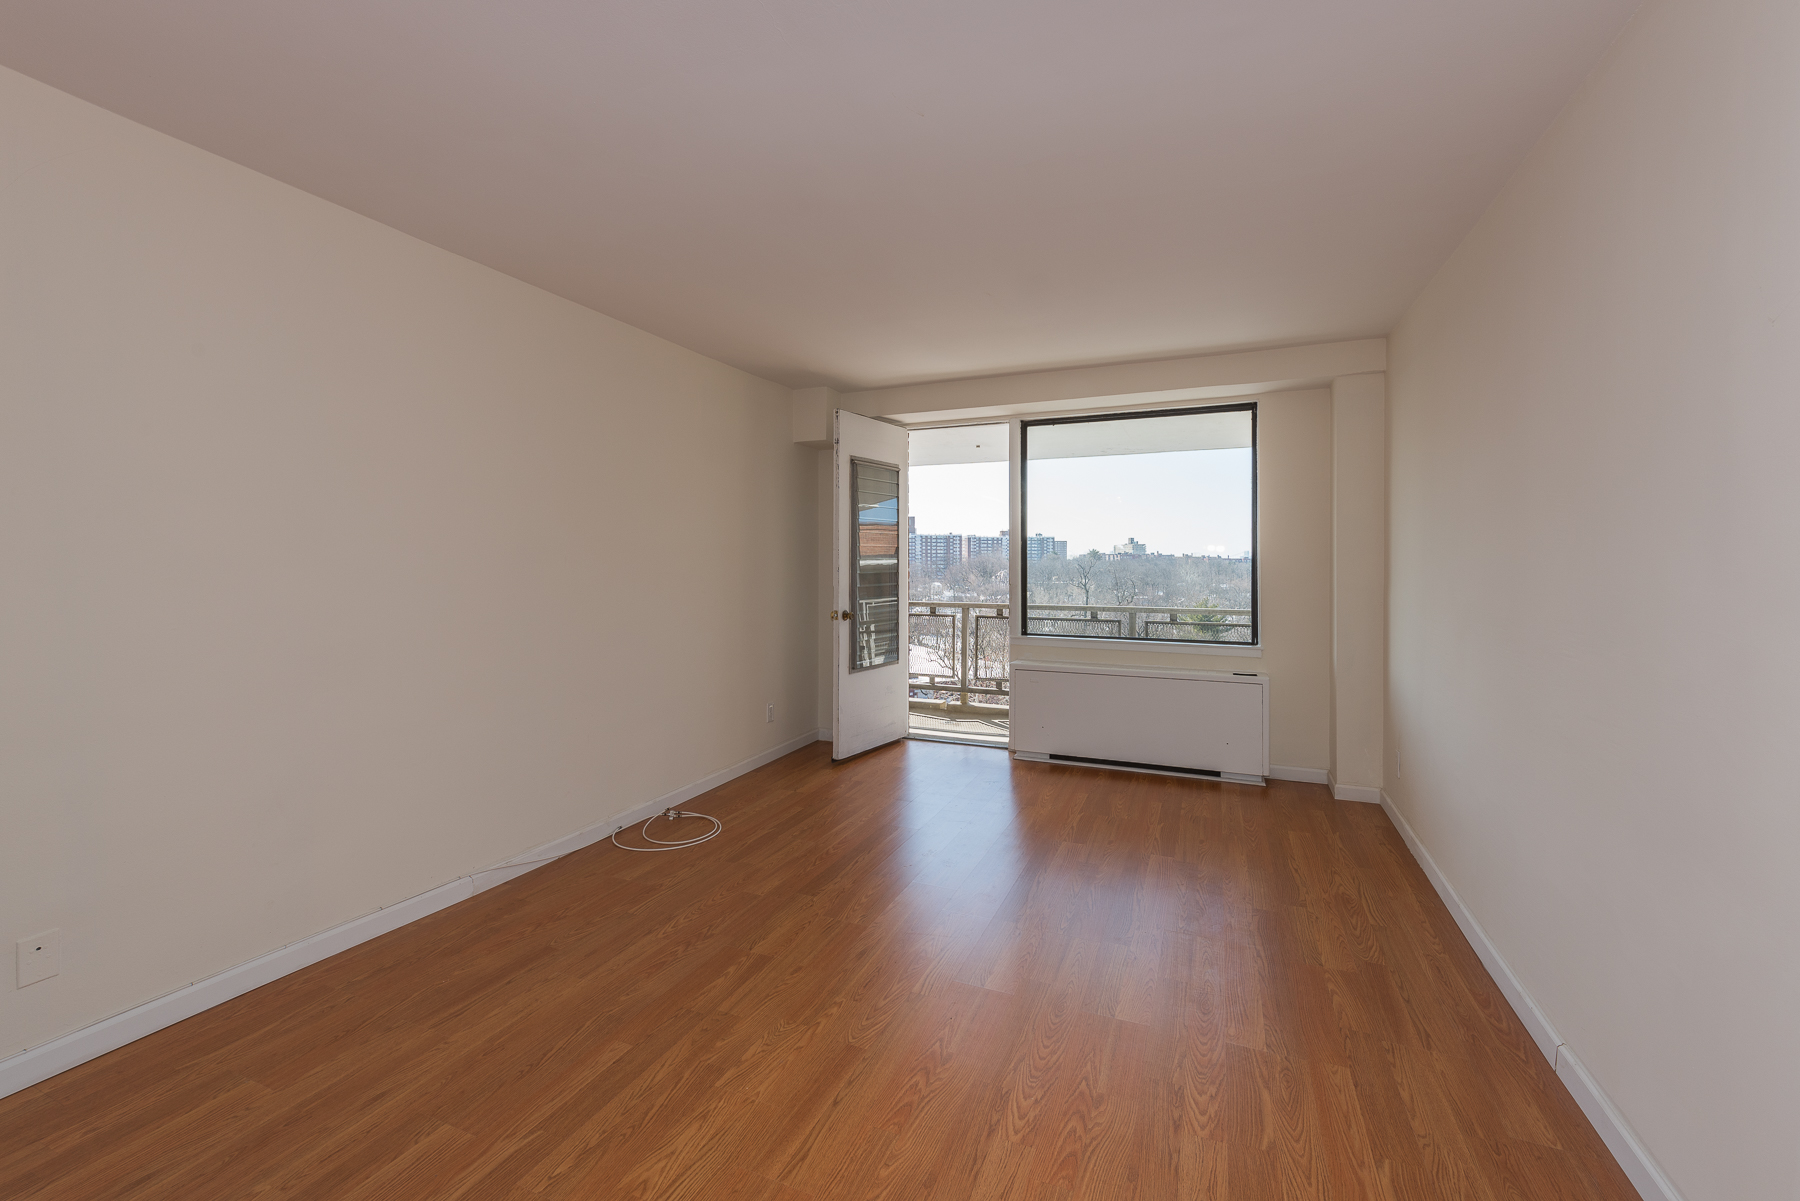 Co-op for Sale at Top Floor Move-in Ready 1 BR 4901 Henry Hudson Parkway 10G Riverdale, New York 10463 United States